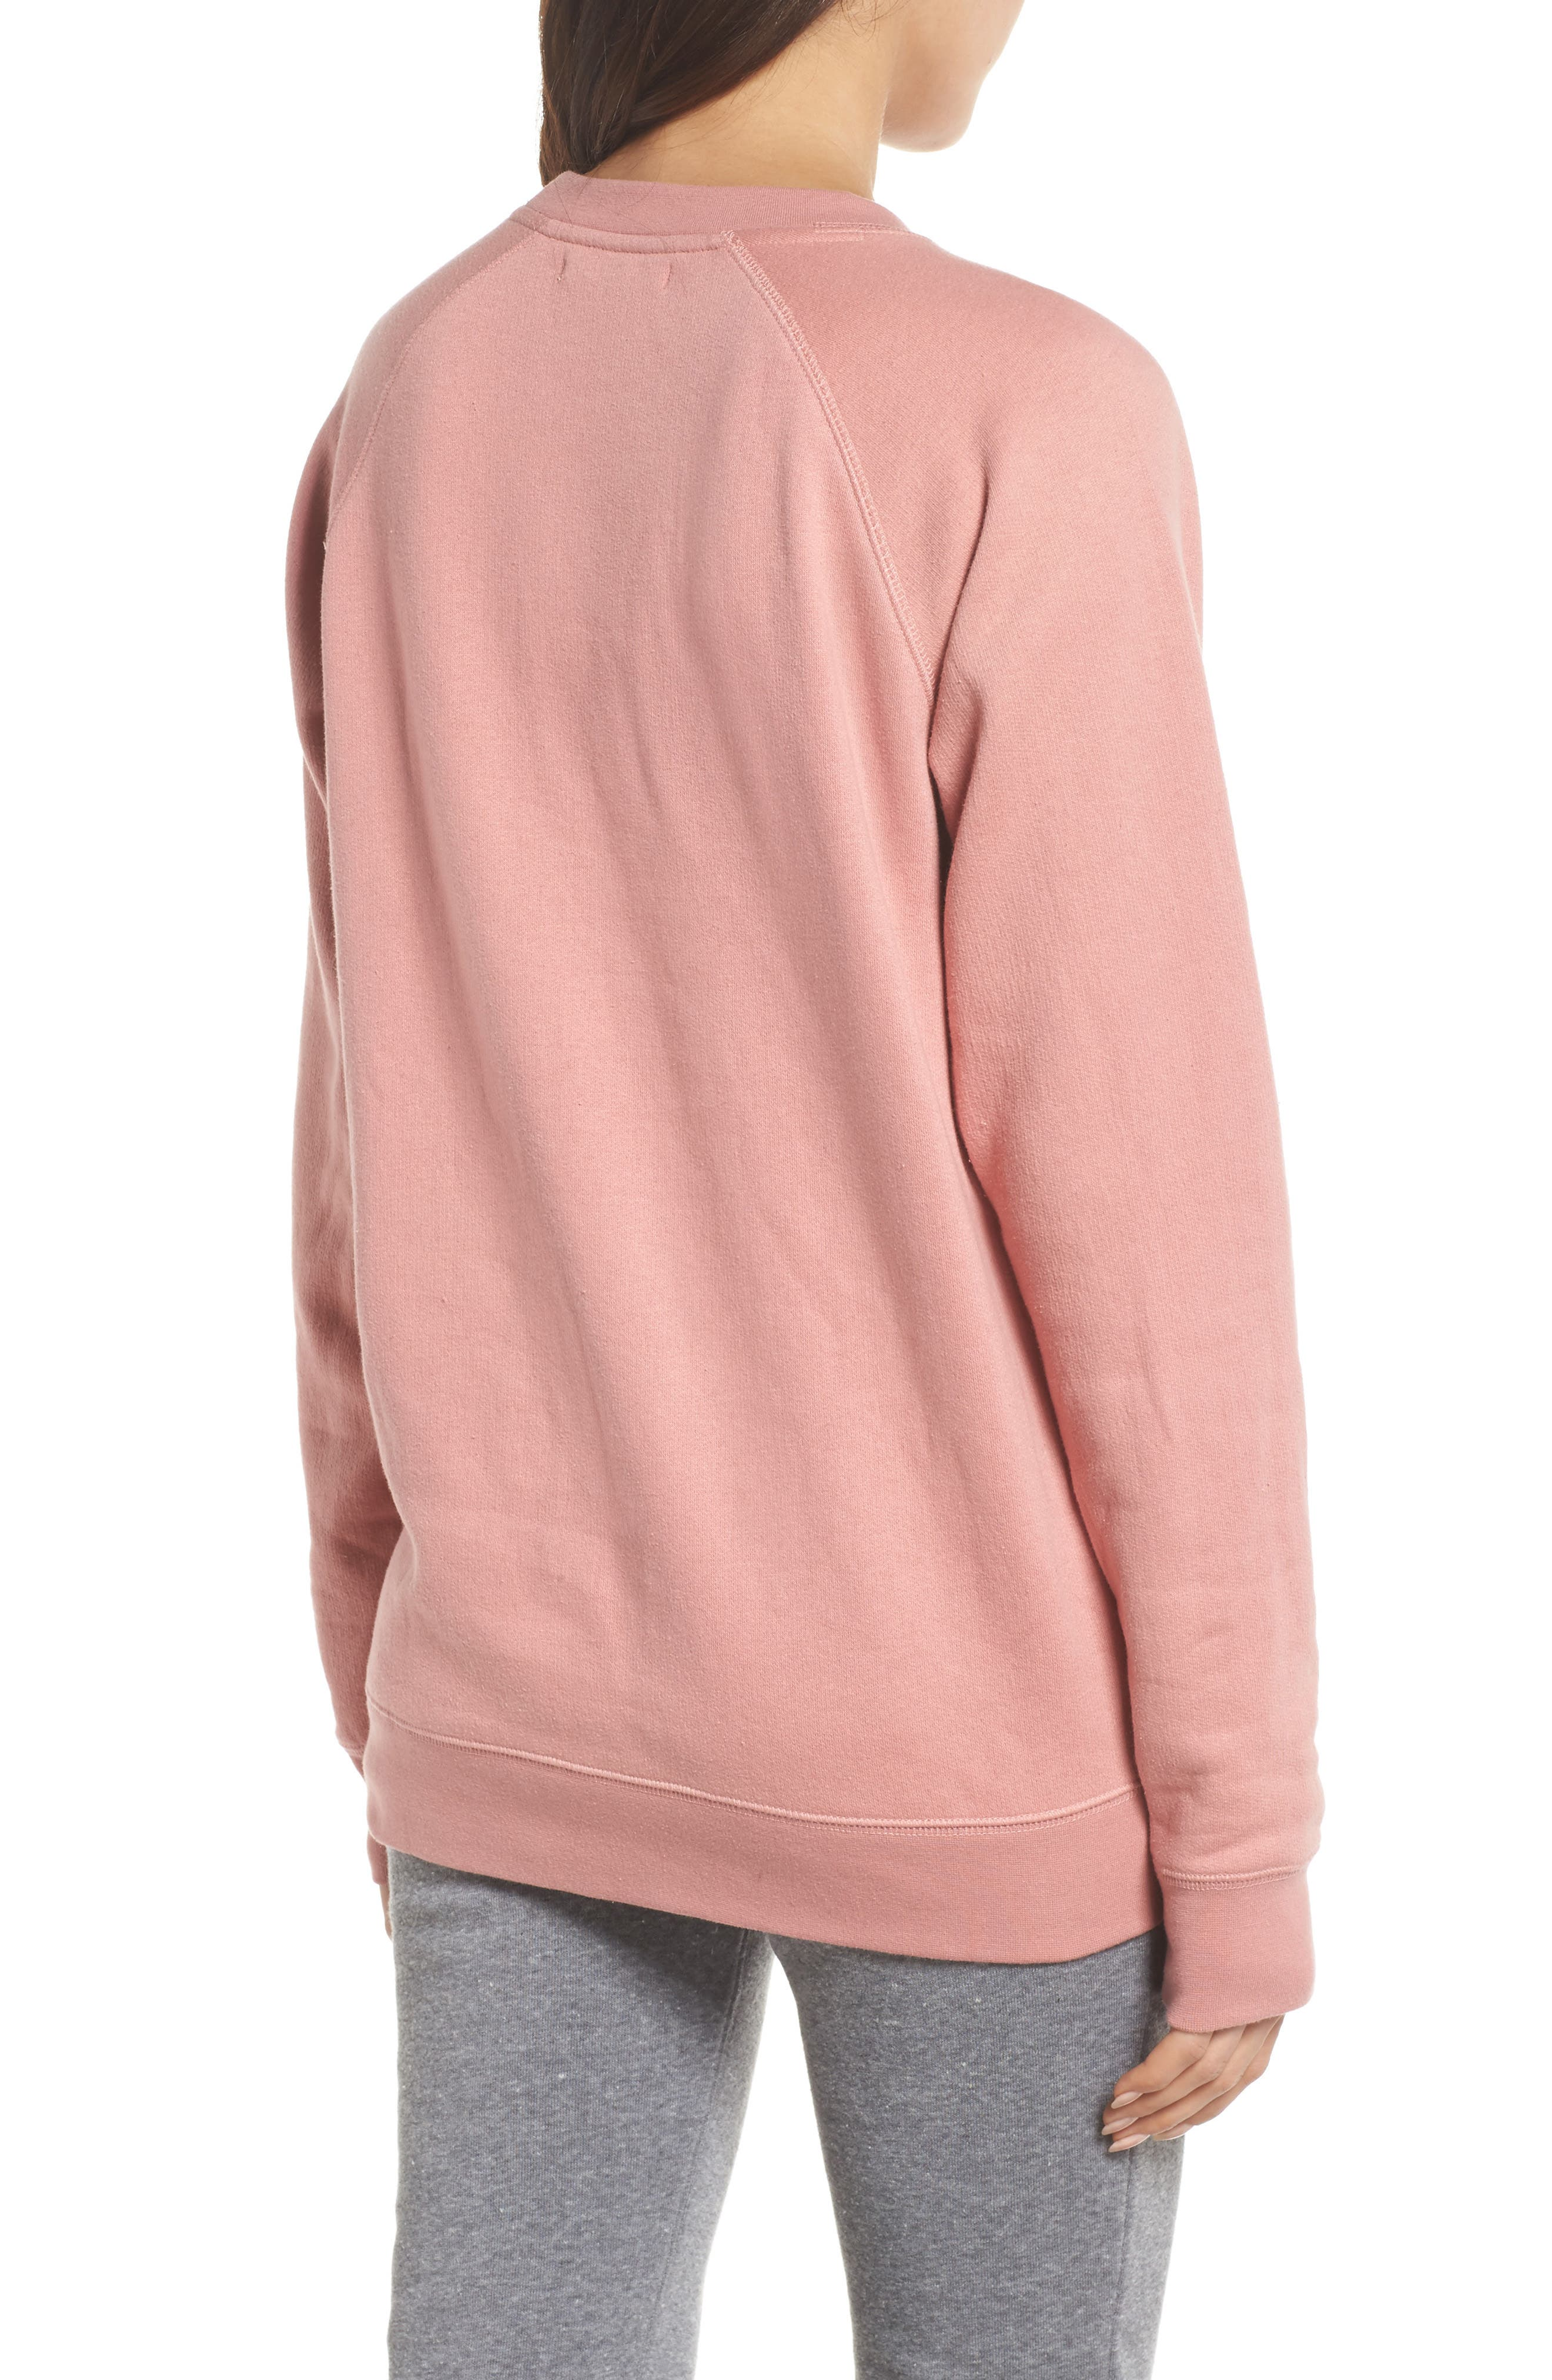 You Can Sip With Us Sweatshirt,                             Alternate thumbnail 2, color,                             Dusty Rose